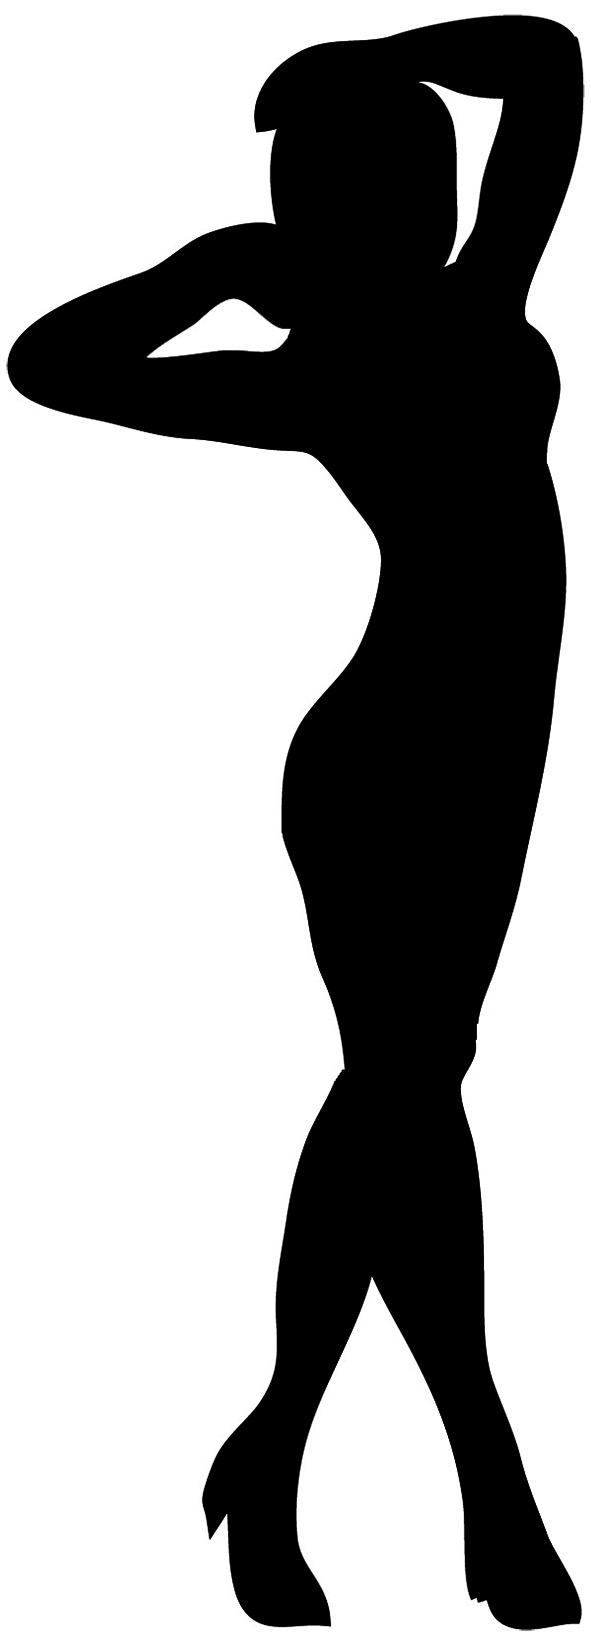 Female silhouette standing woman. Afro clipart outline